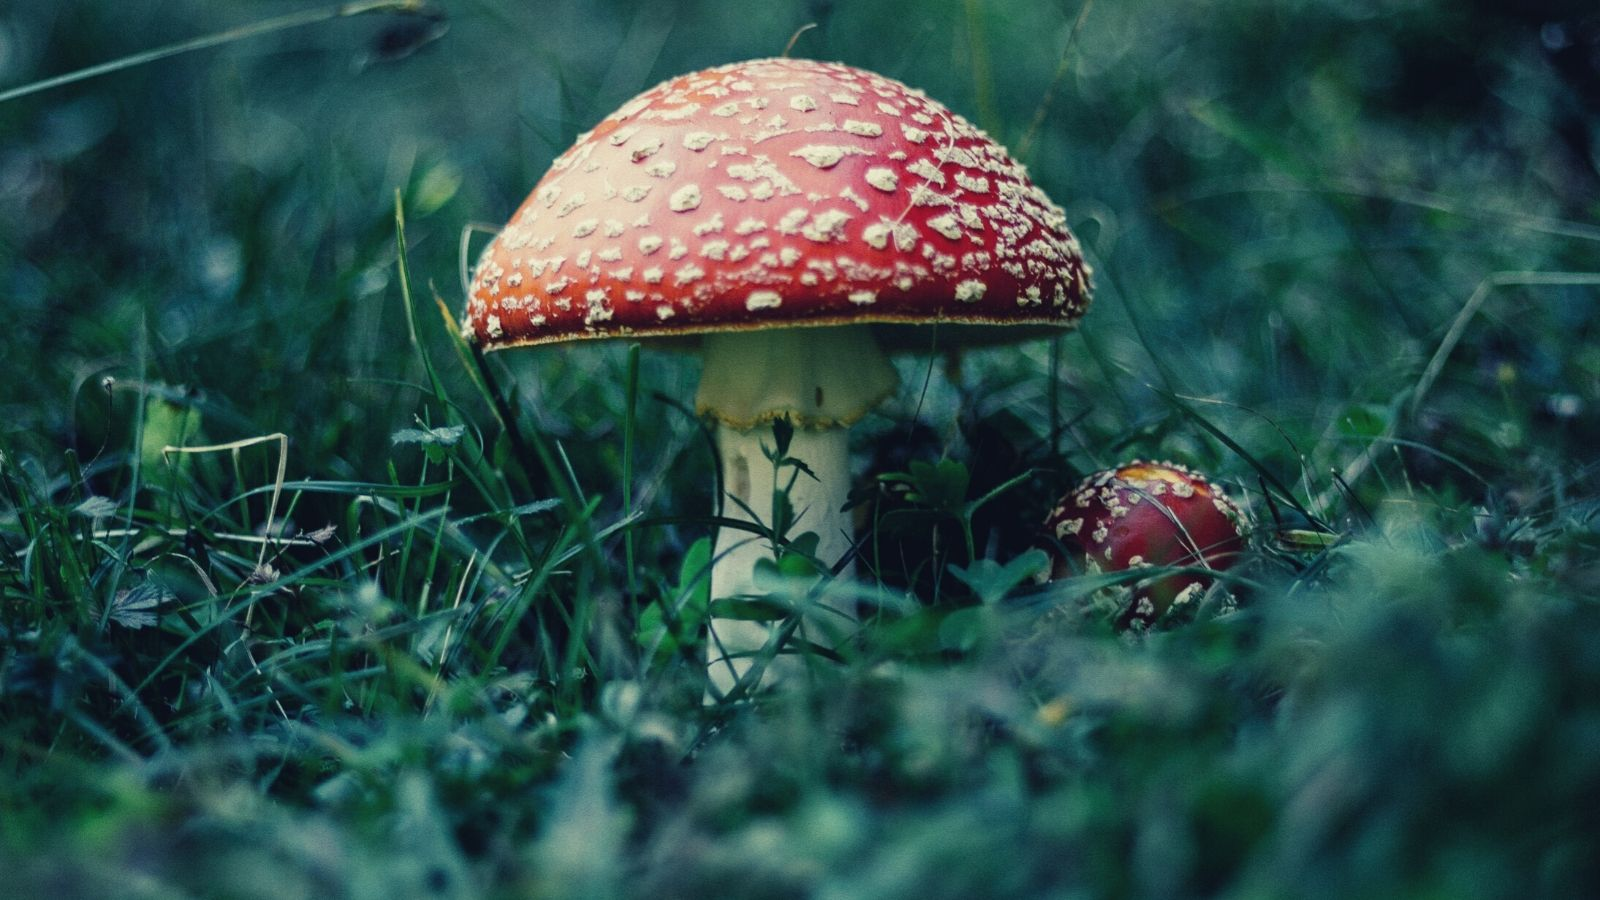 A toxic amanita muscaria mushroom growing in the forest